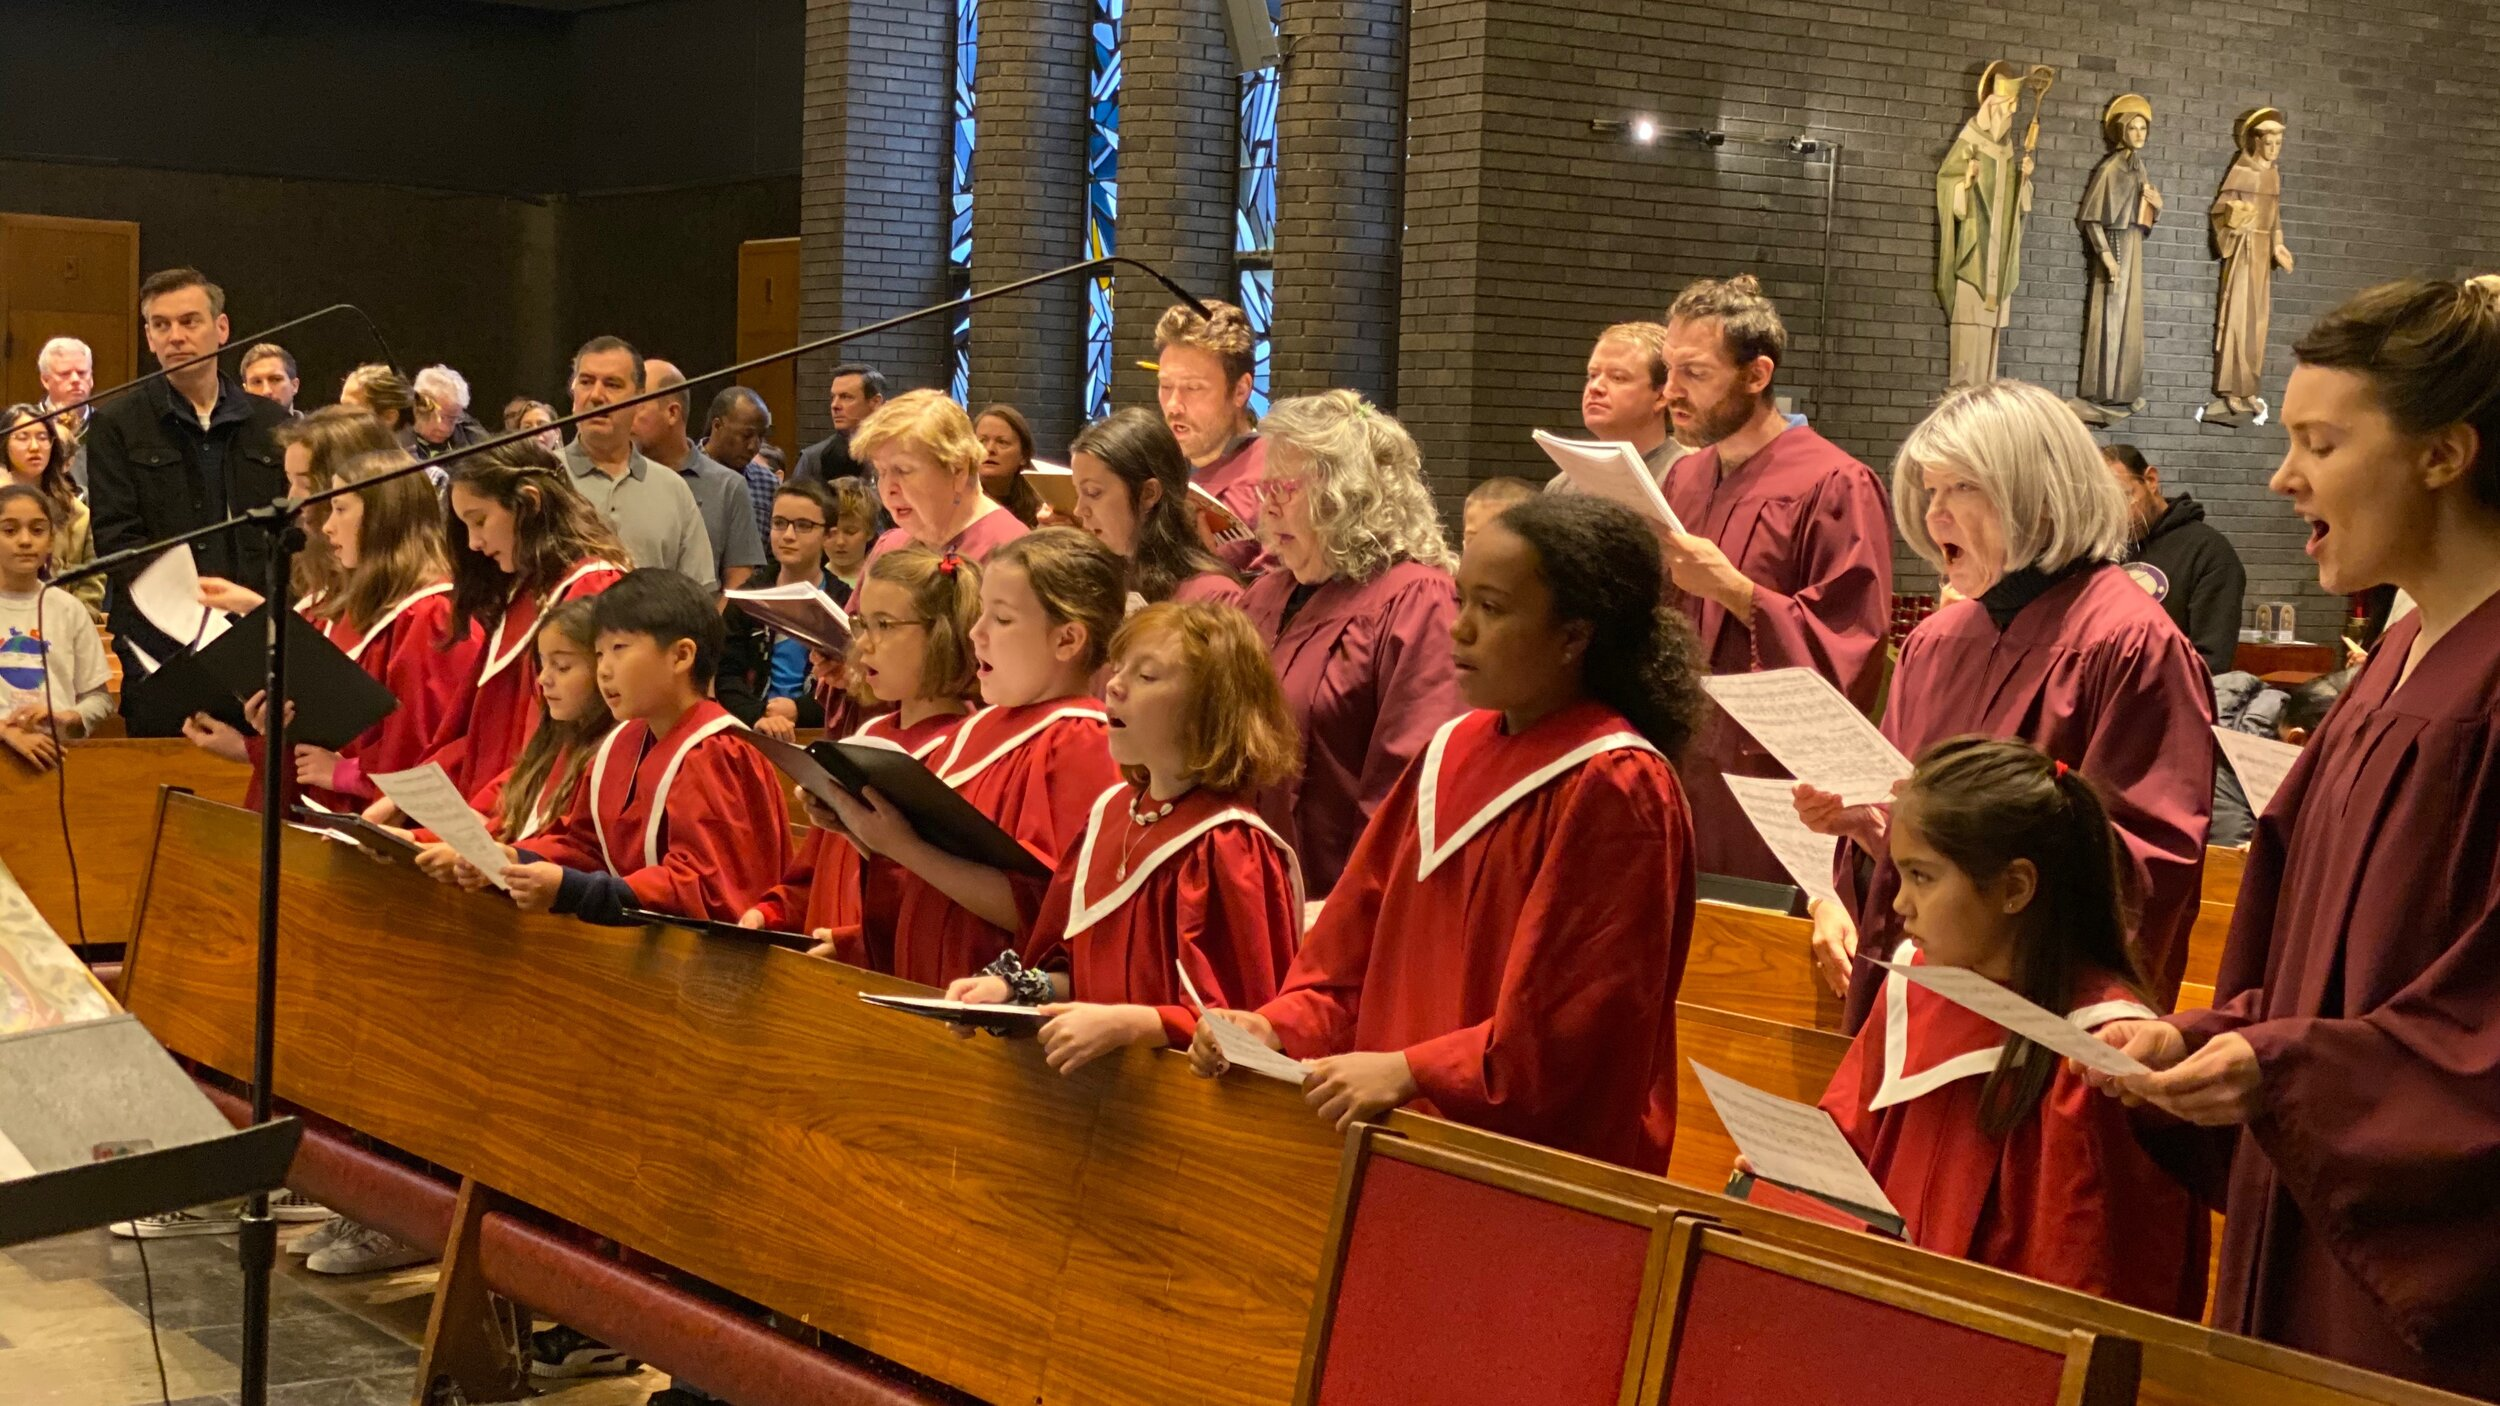 EPIPHANY COMMUNITY CHORUS